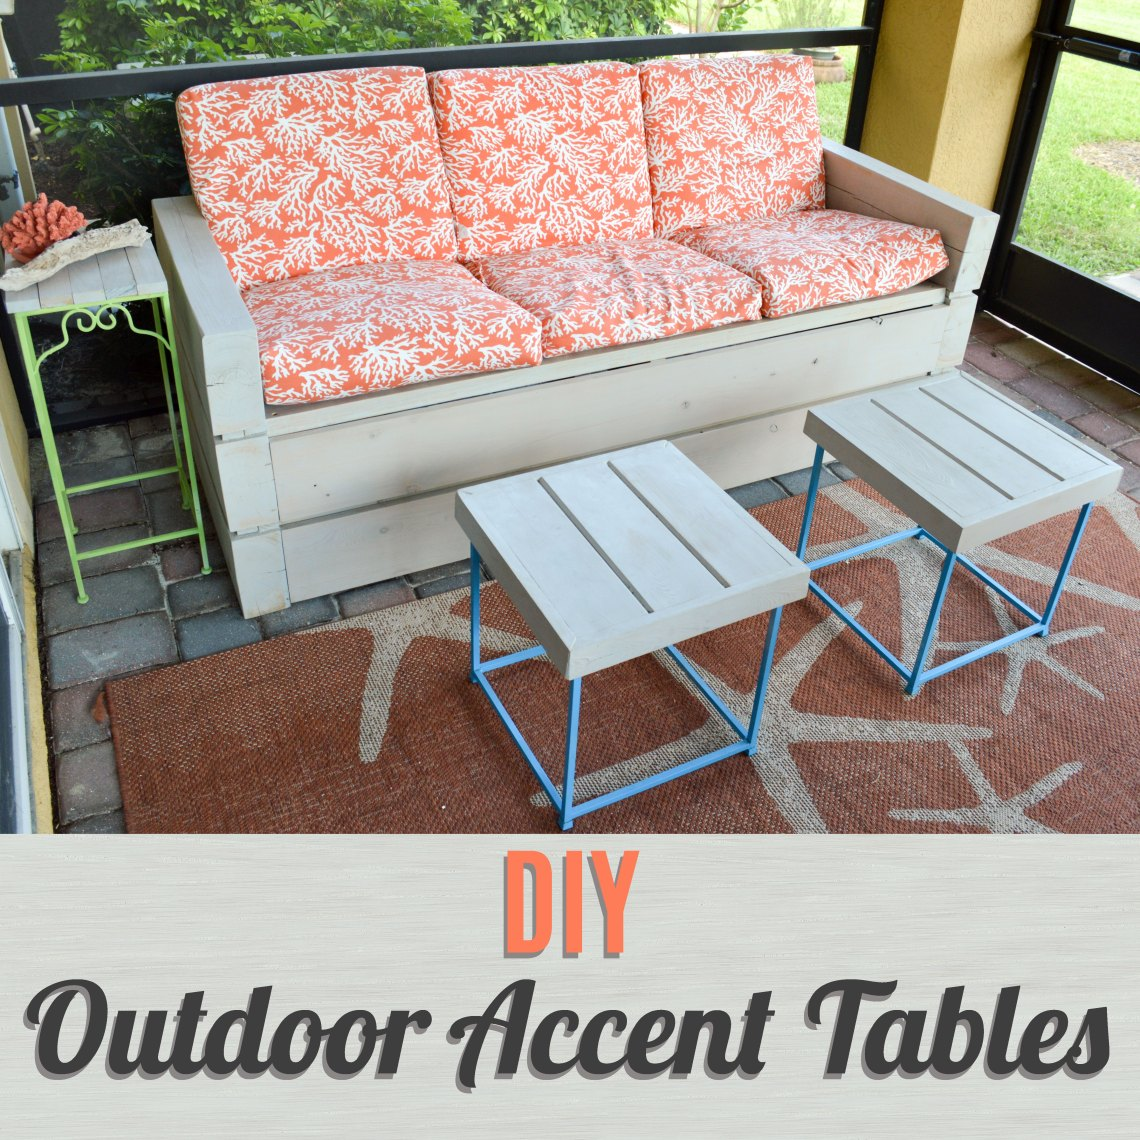 diy outdoor accent tables better when built lsidetablesfeature after finished the sofa for lanai family needed some because are always out eating breakfast white home accessories